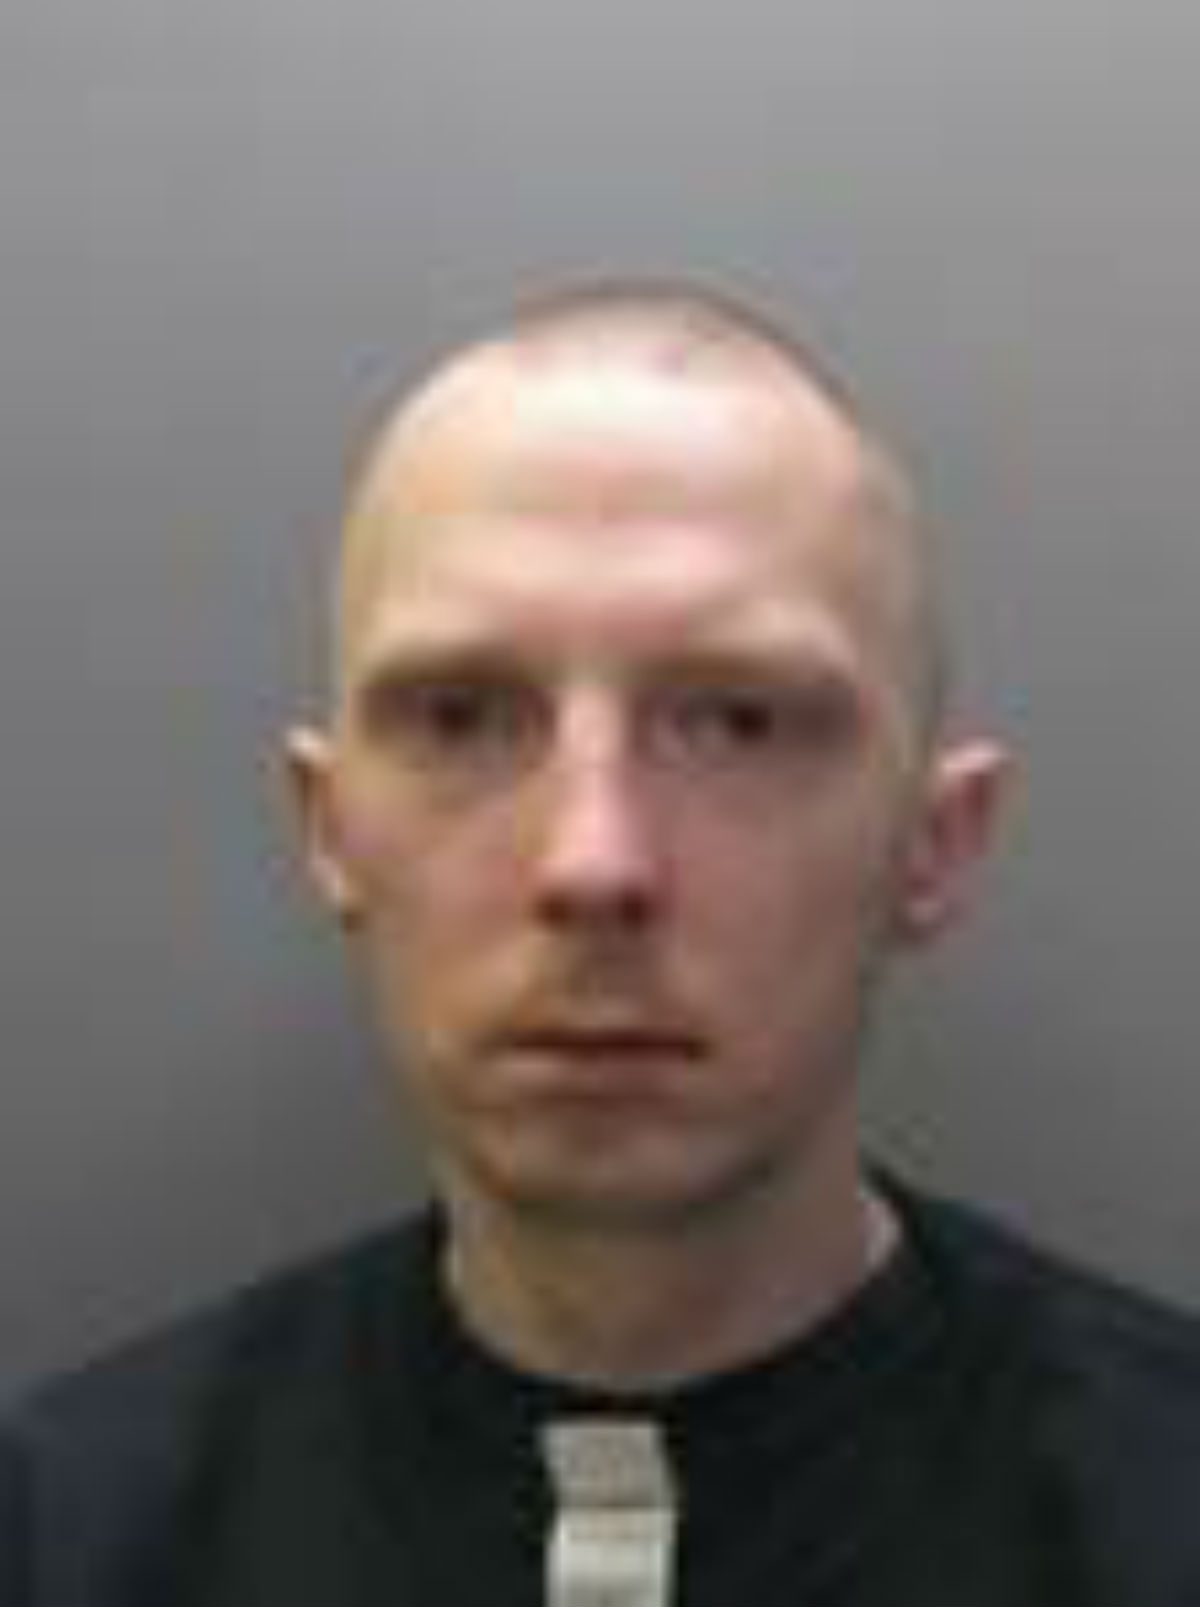 JAILED: David Harrison